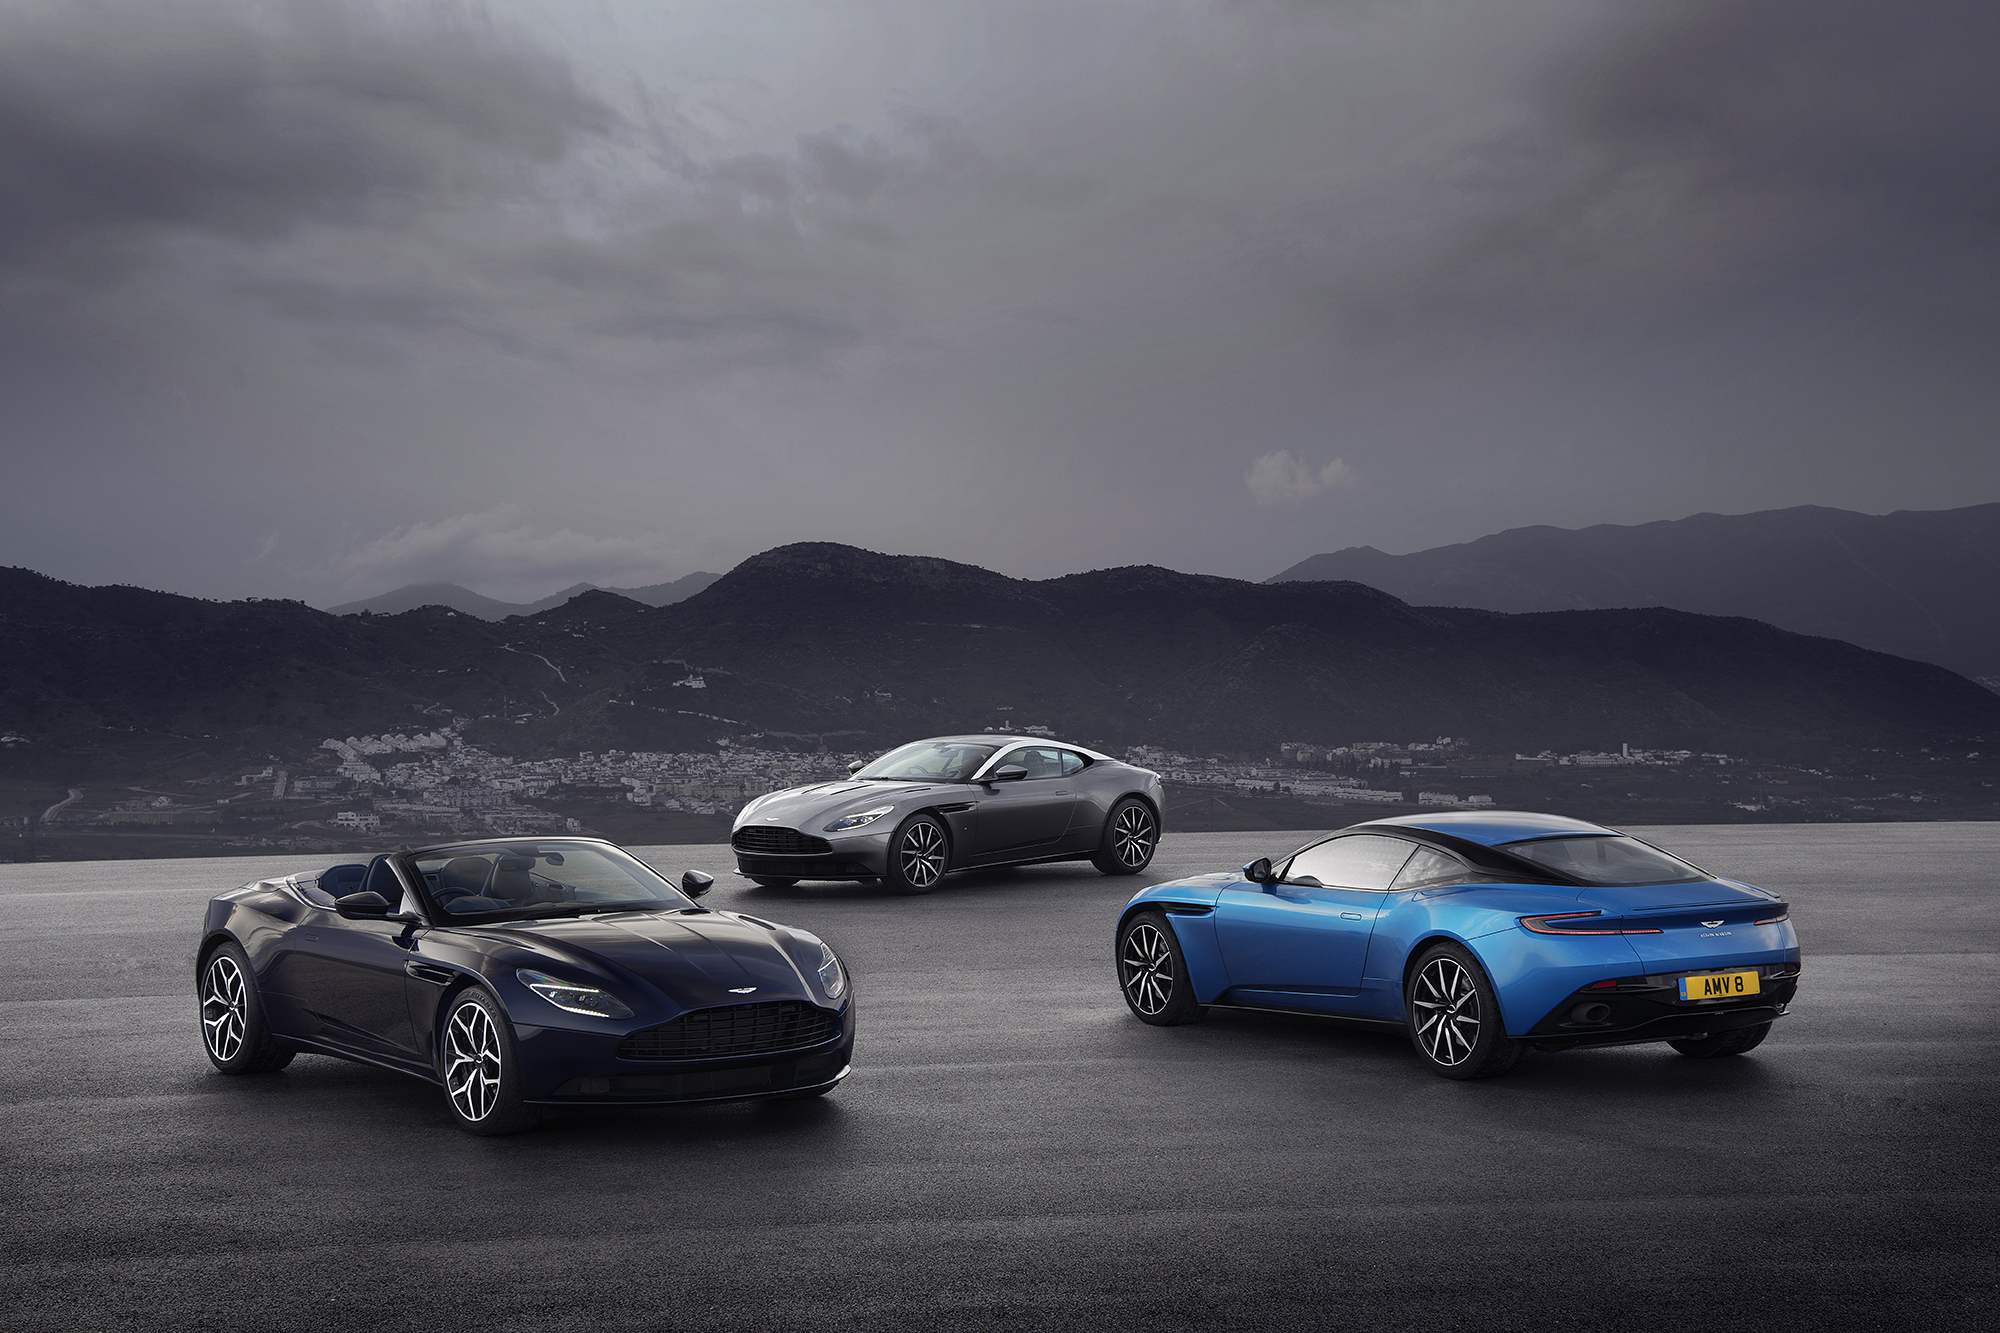 Aston Martin To Bring A Surprise Or Two To The 2018 Geneva Motor Show